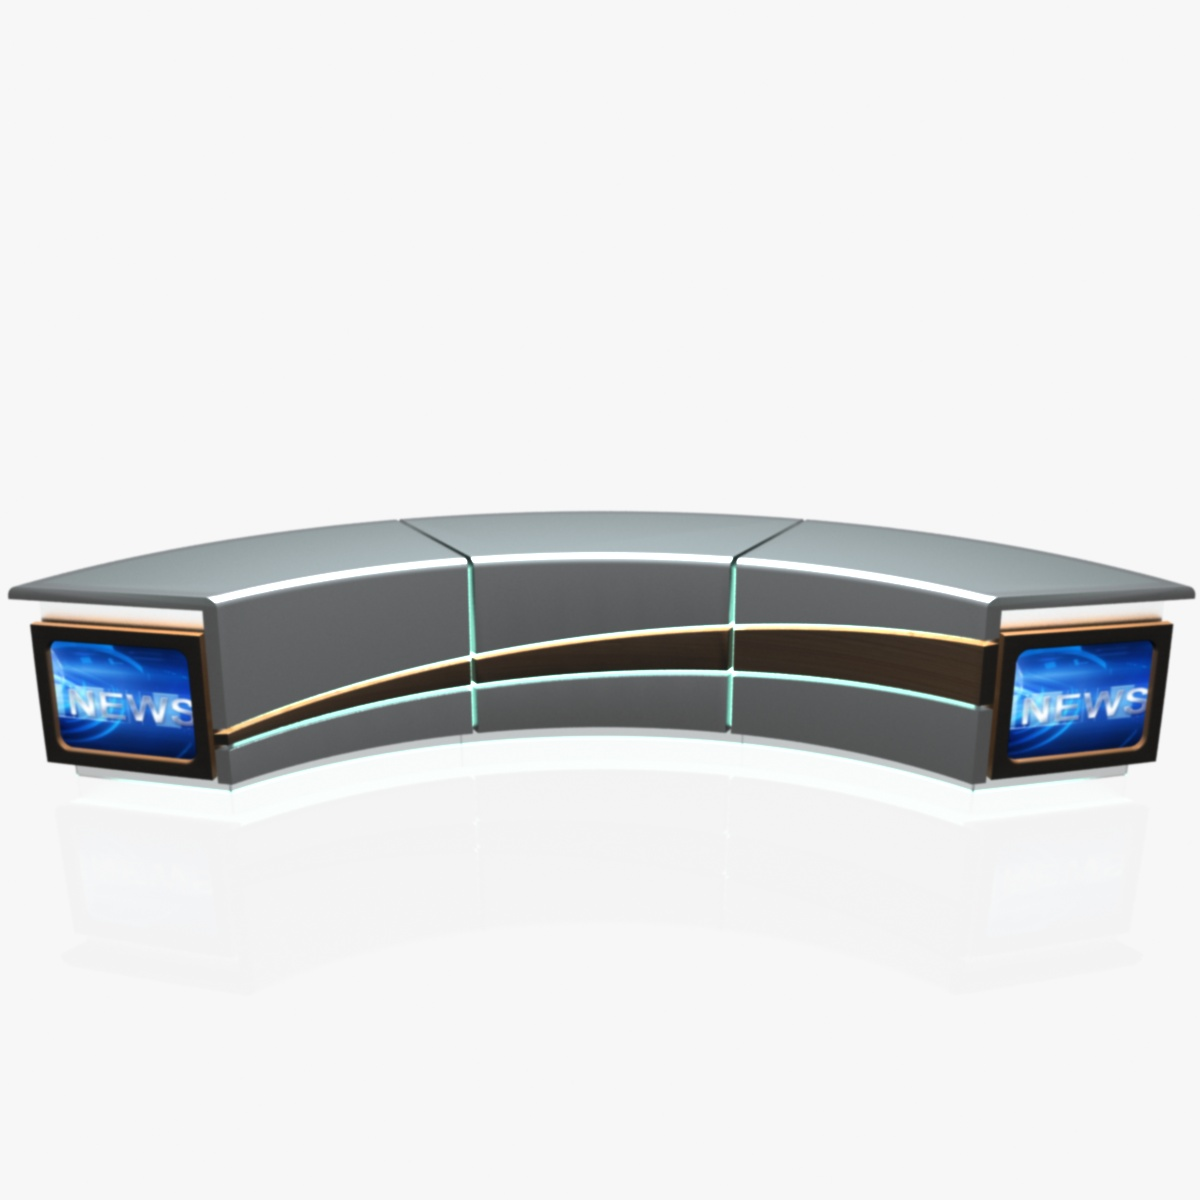 virtual tv studio news desk 4 3d model 3ds max dxf fbx  obj 215937